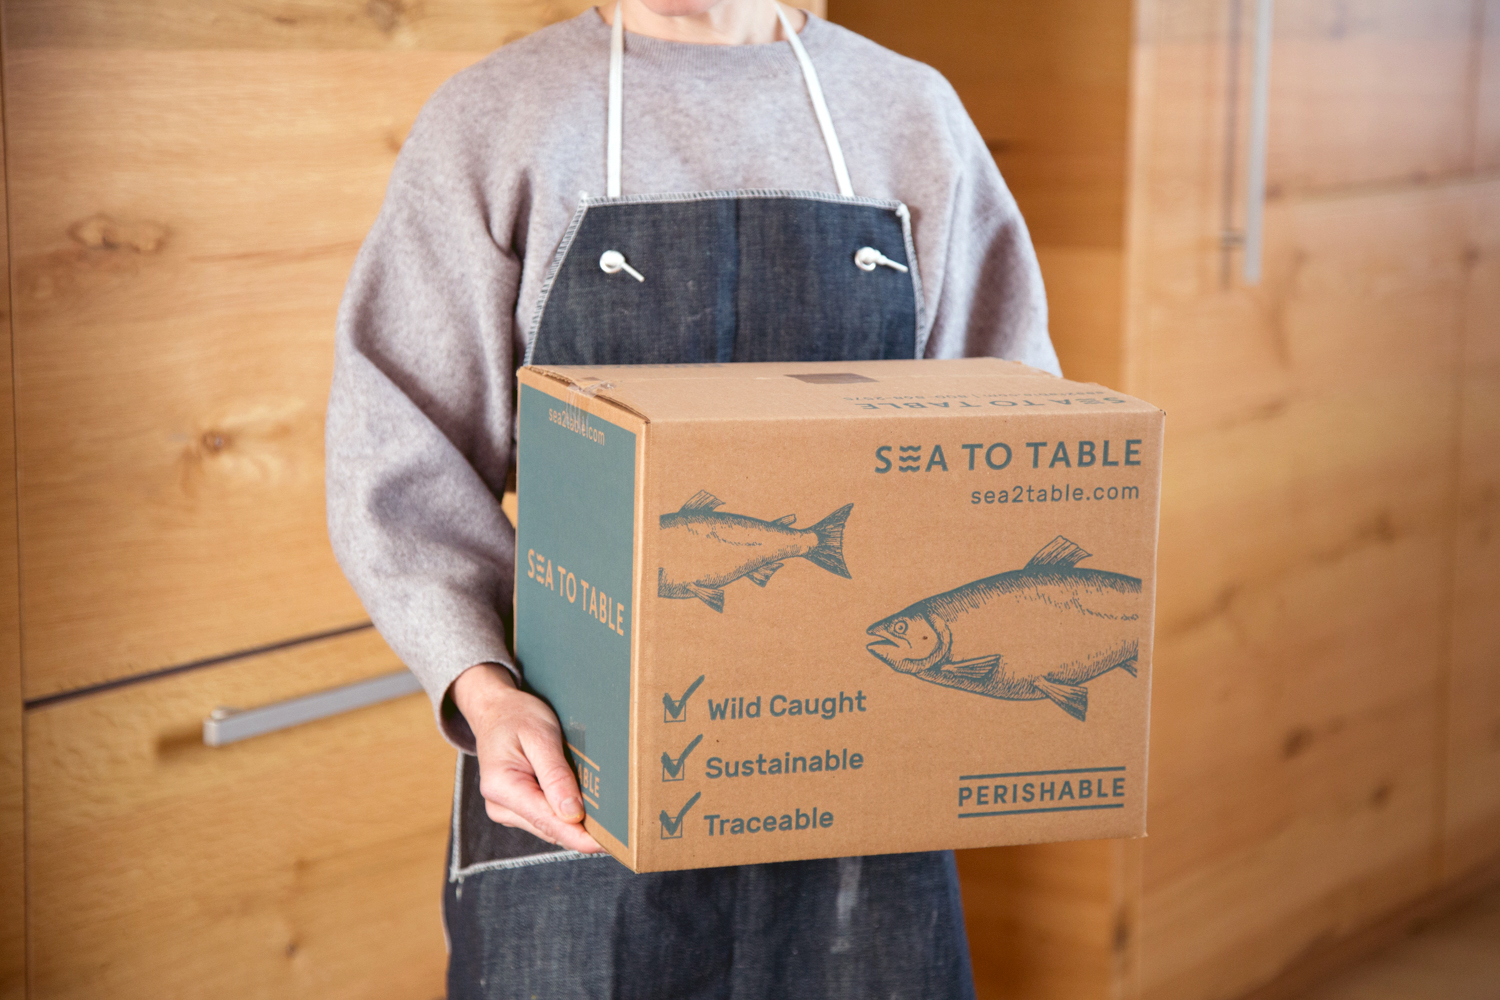 Sea To Table Launches The First National Home Delivery Service Providing Exclusively U S Wild Caught Traceable Restaurant Quality Seafood Direct